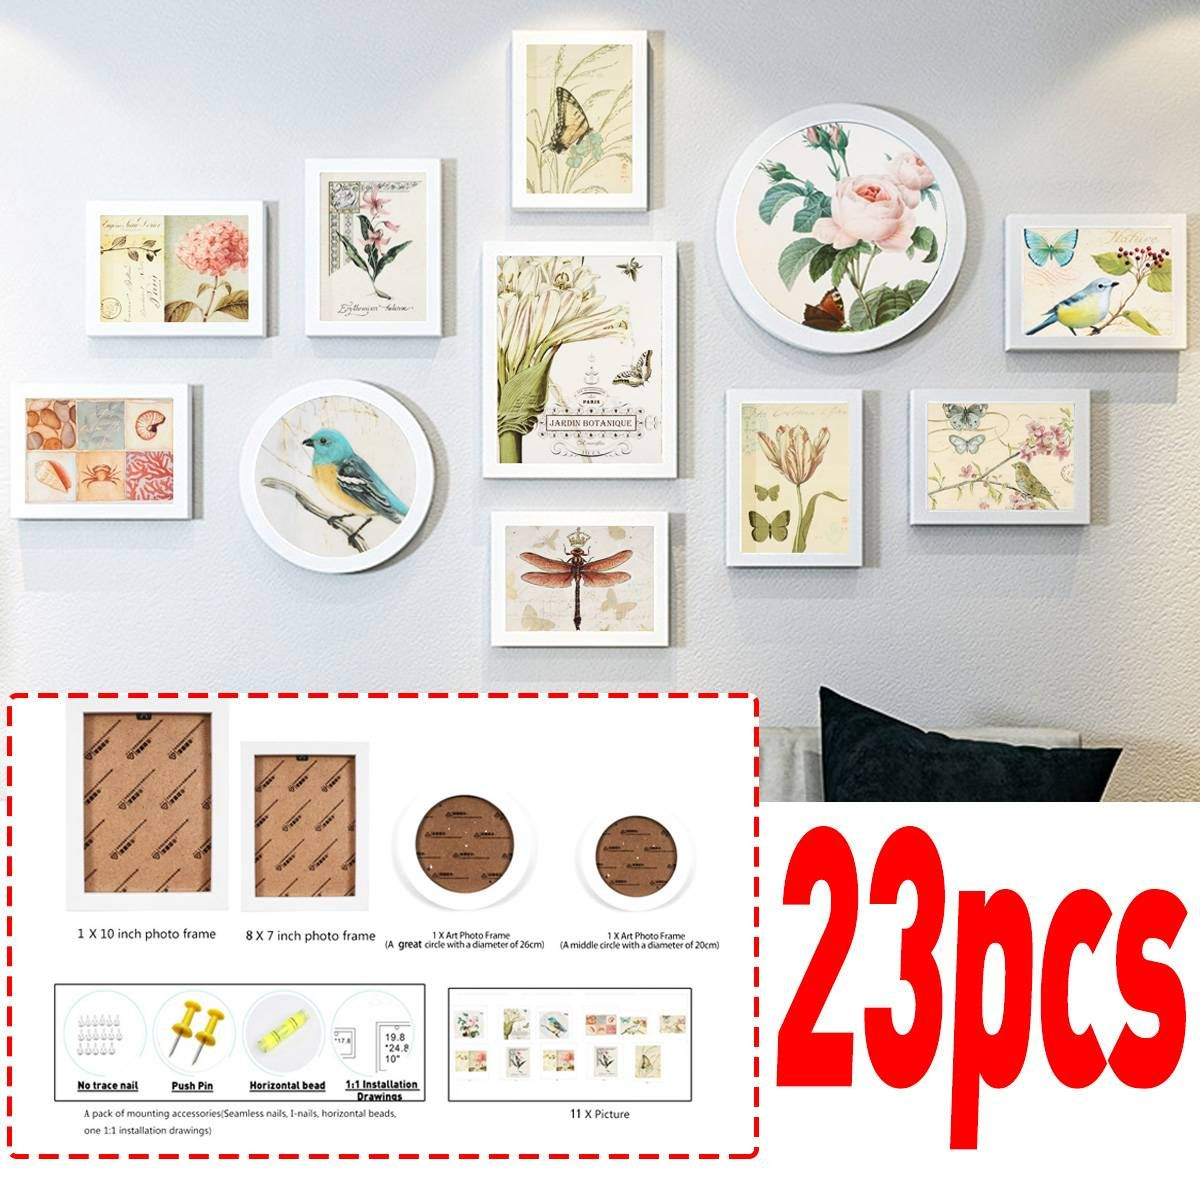 Multi Picture Photo Frame Set Wall Frames Set Collage Family Picture Display Wall Hanging Art Picture Display Wall Displaying Family Pictures Wall Frame Set